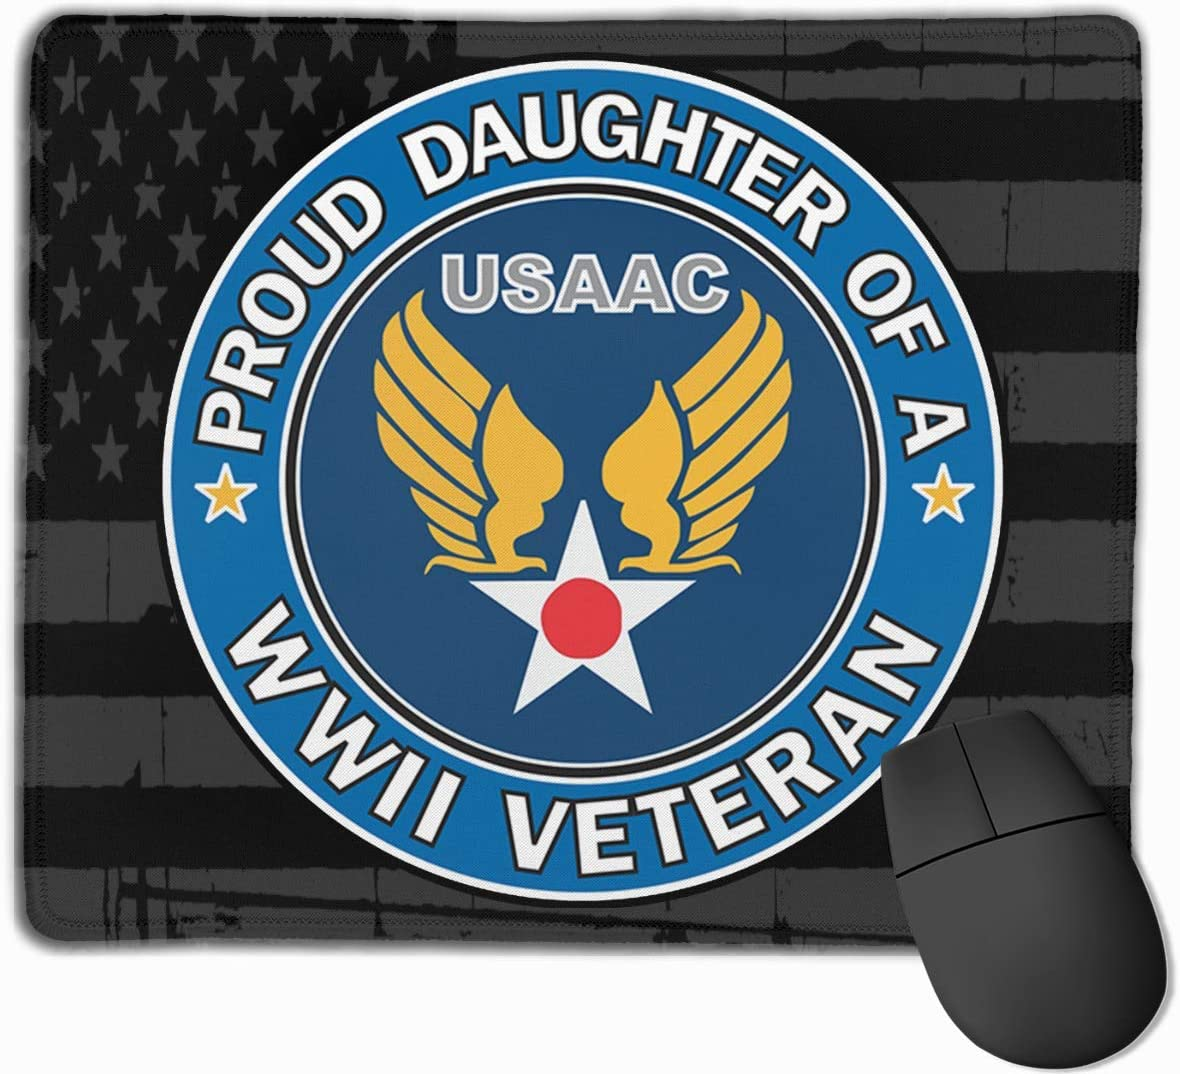 US Army Air Corps Proud Daughter WW2 Veteran Mouse Pads Non-Slip Gaming Mouse Pad Mousepad